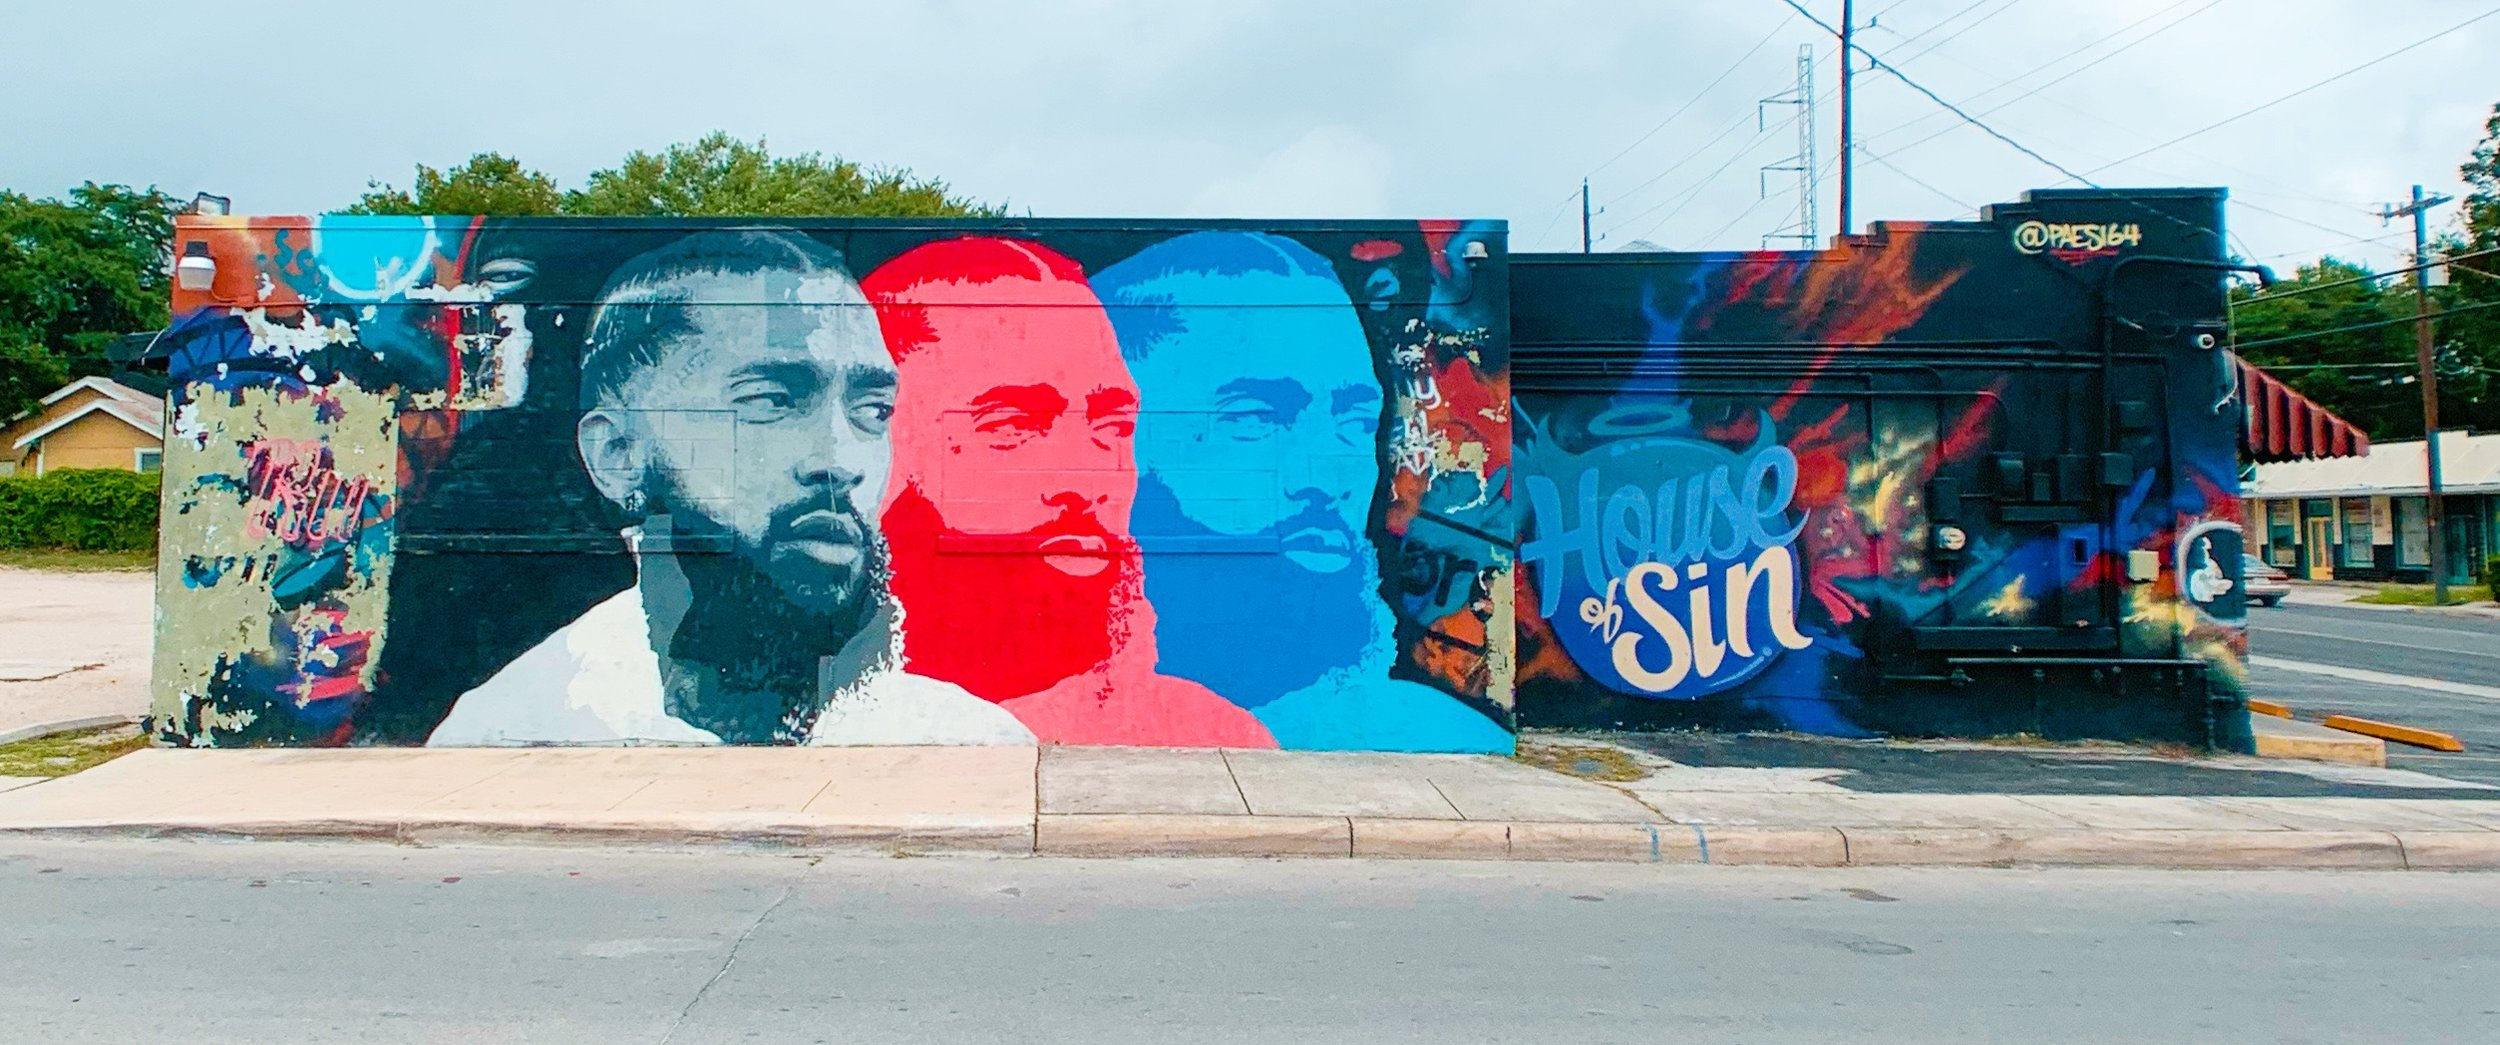 Nipsey Hussle Mural at House of Sin by @Paes164